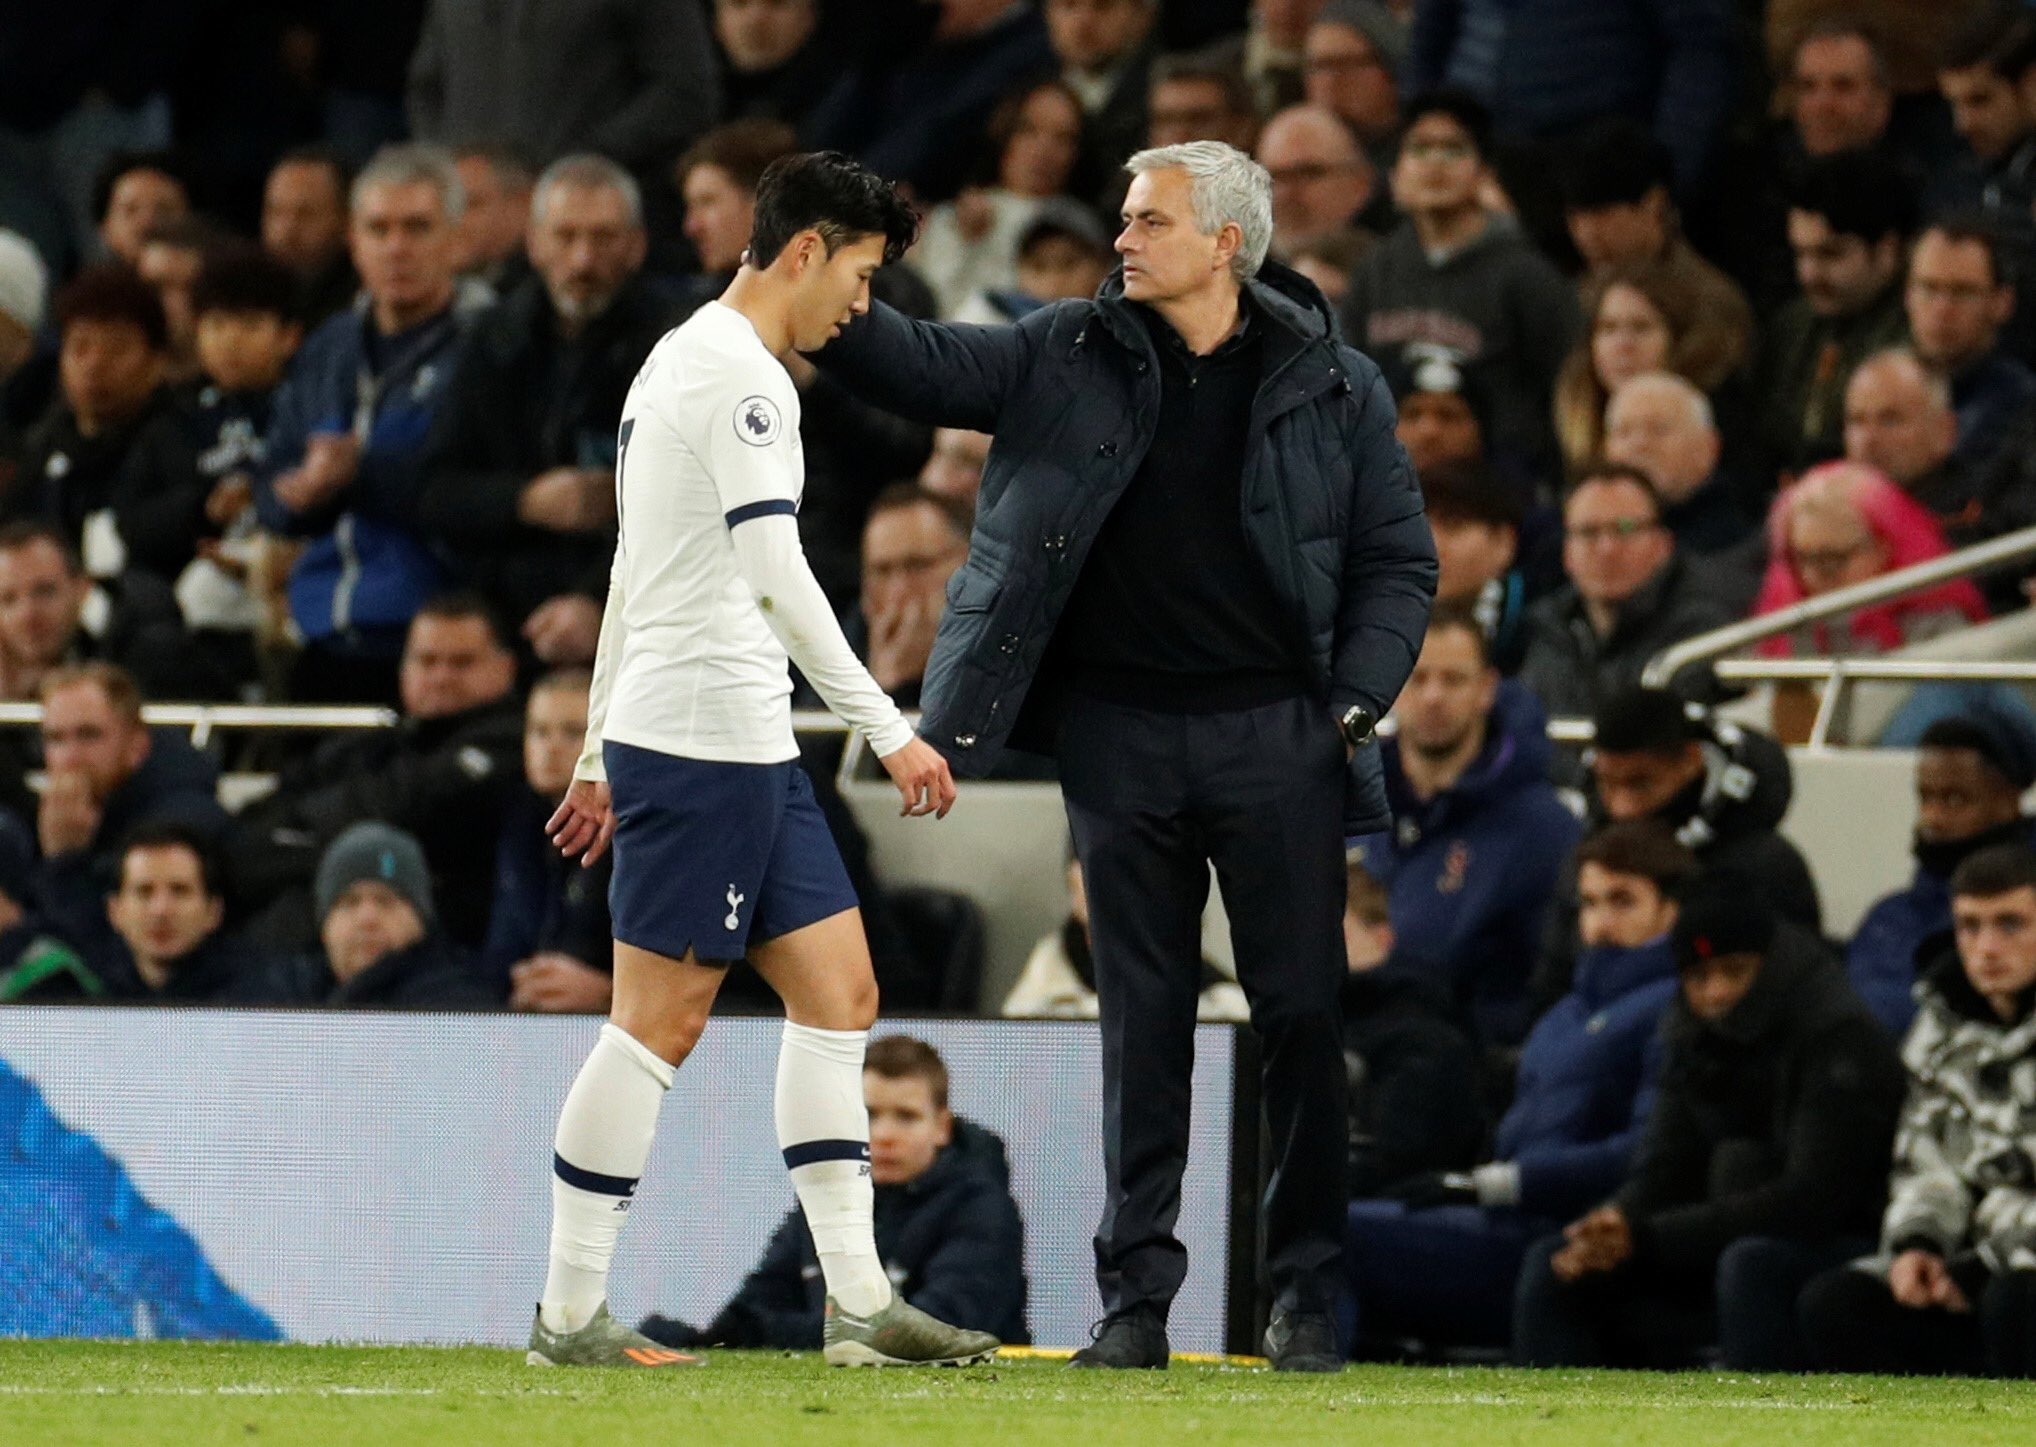 Mourinho Warns Against Killing World's Best EPL As Spurs Appeal Son Red Card